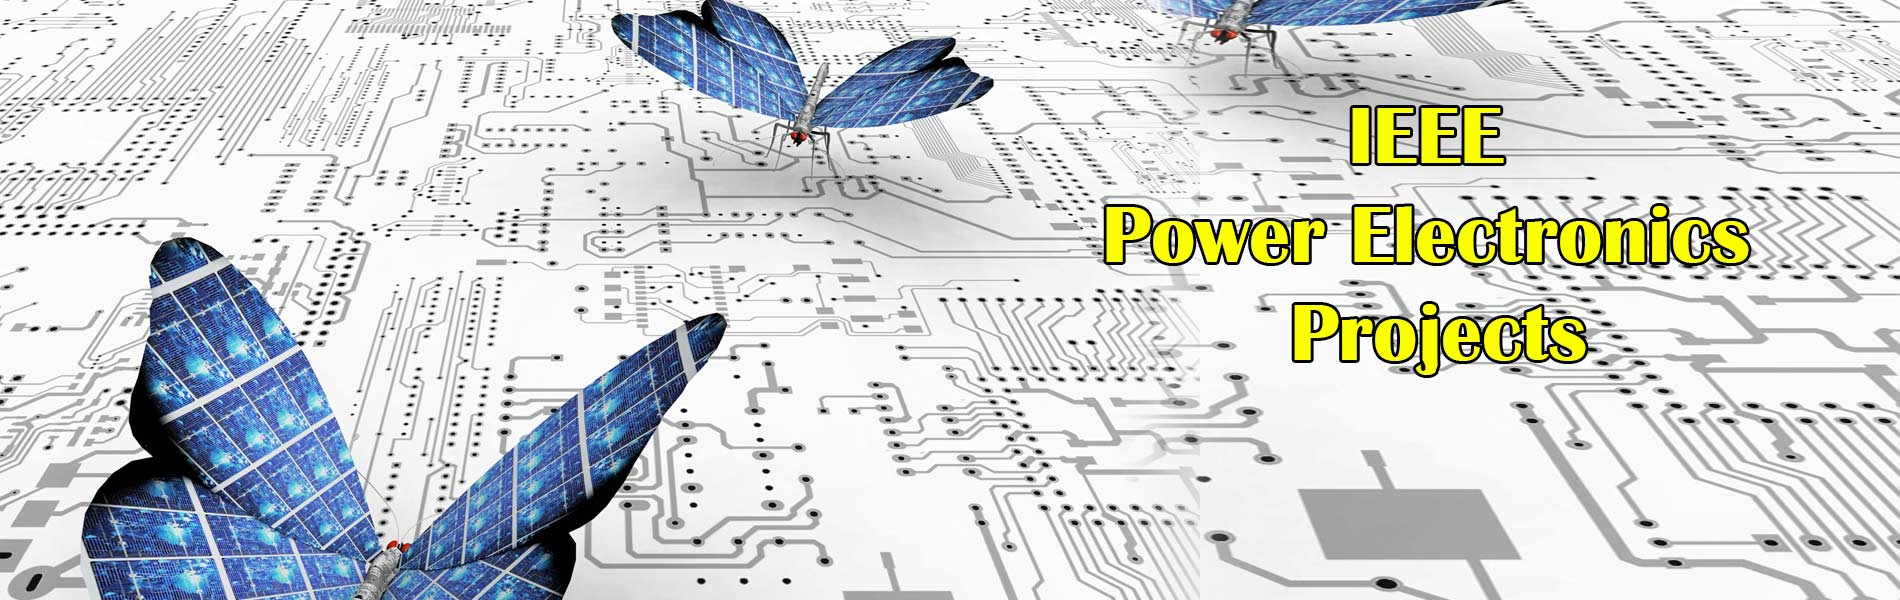 Power Electronics Projects Final Year Engineering Mini Ides For Students With Project Ieee 2016 Systems Titles